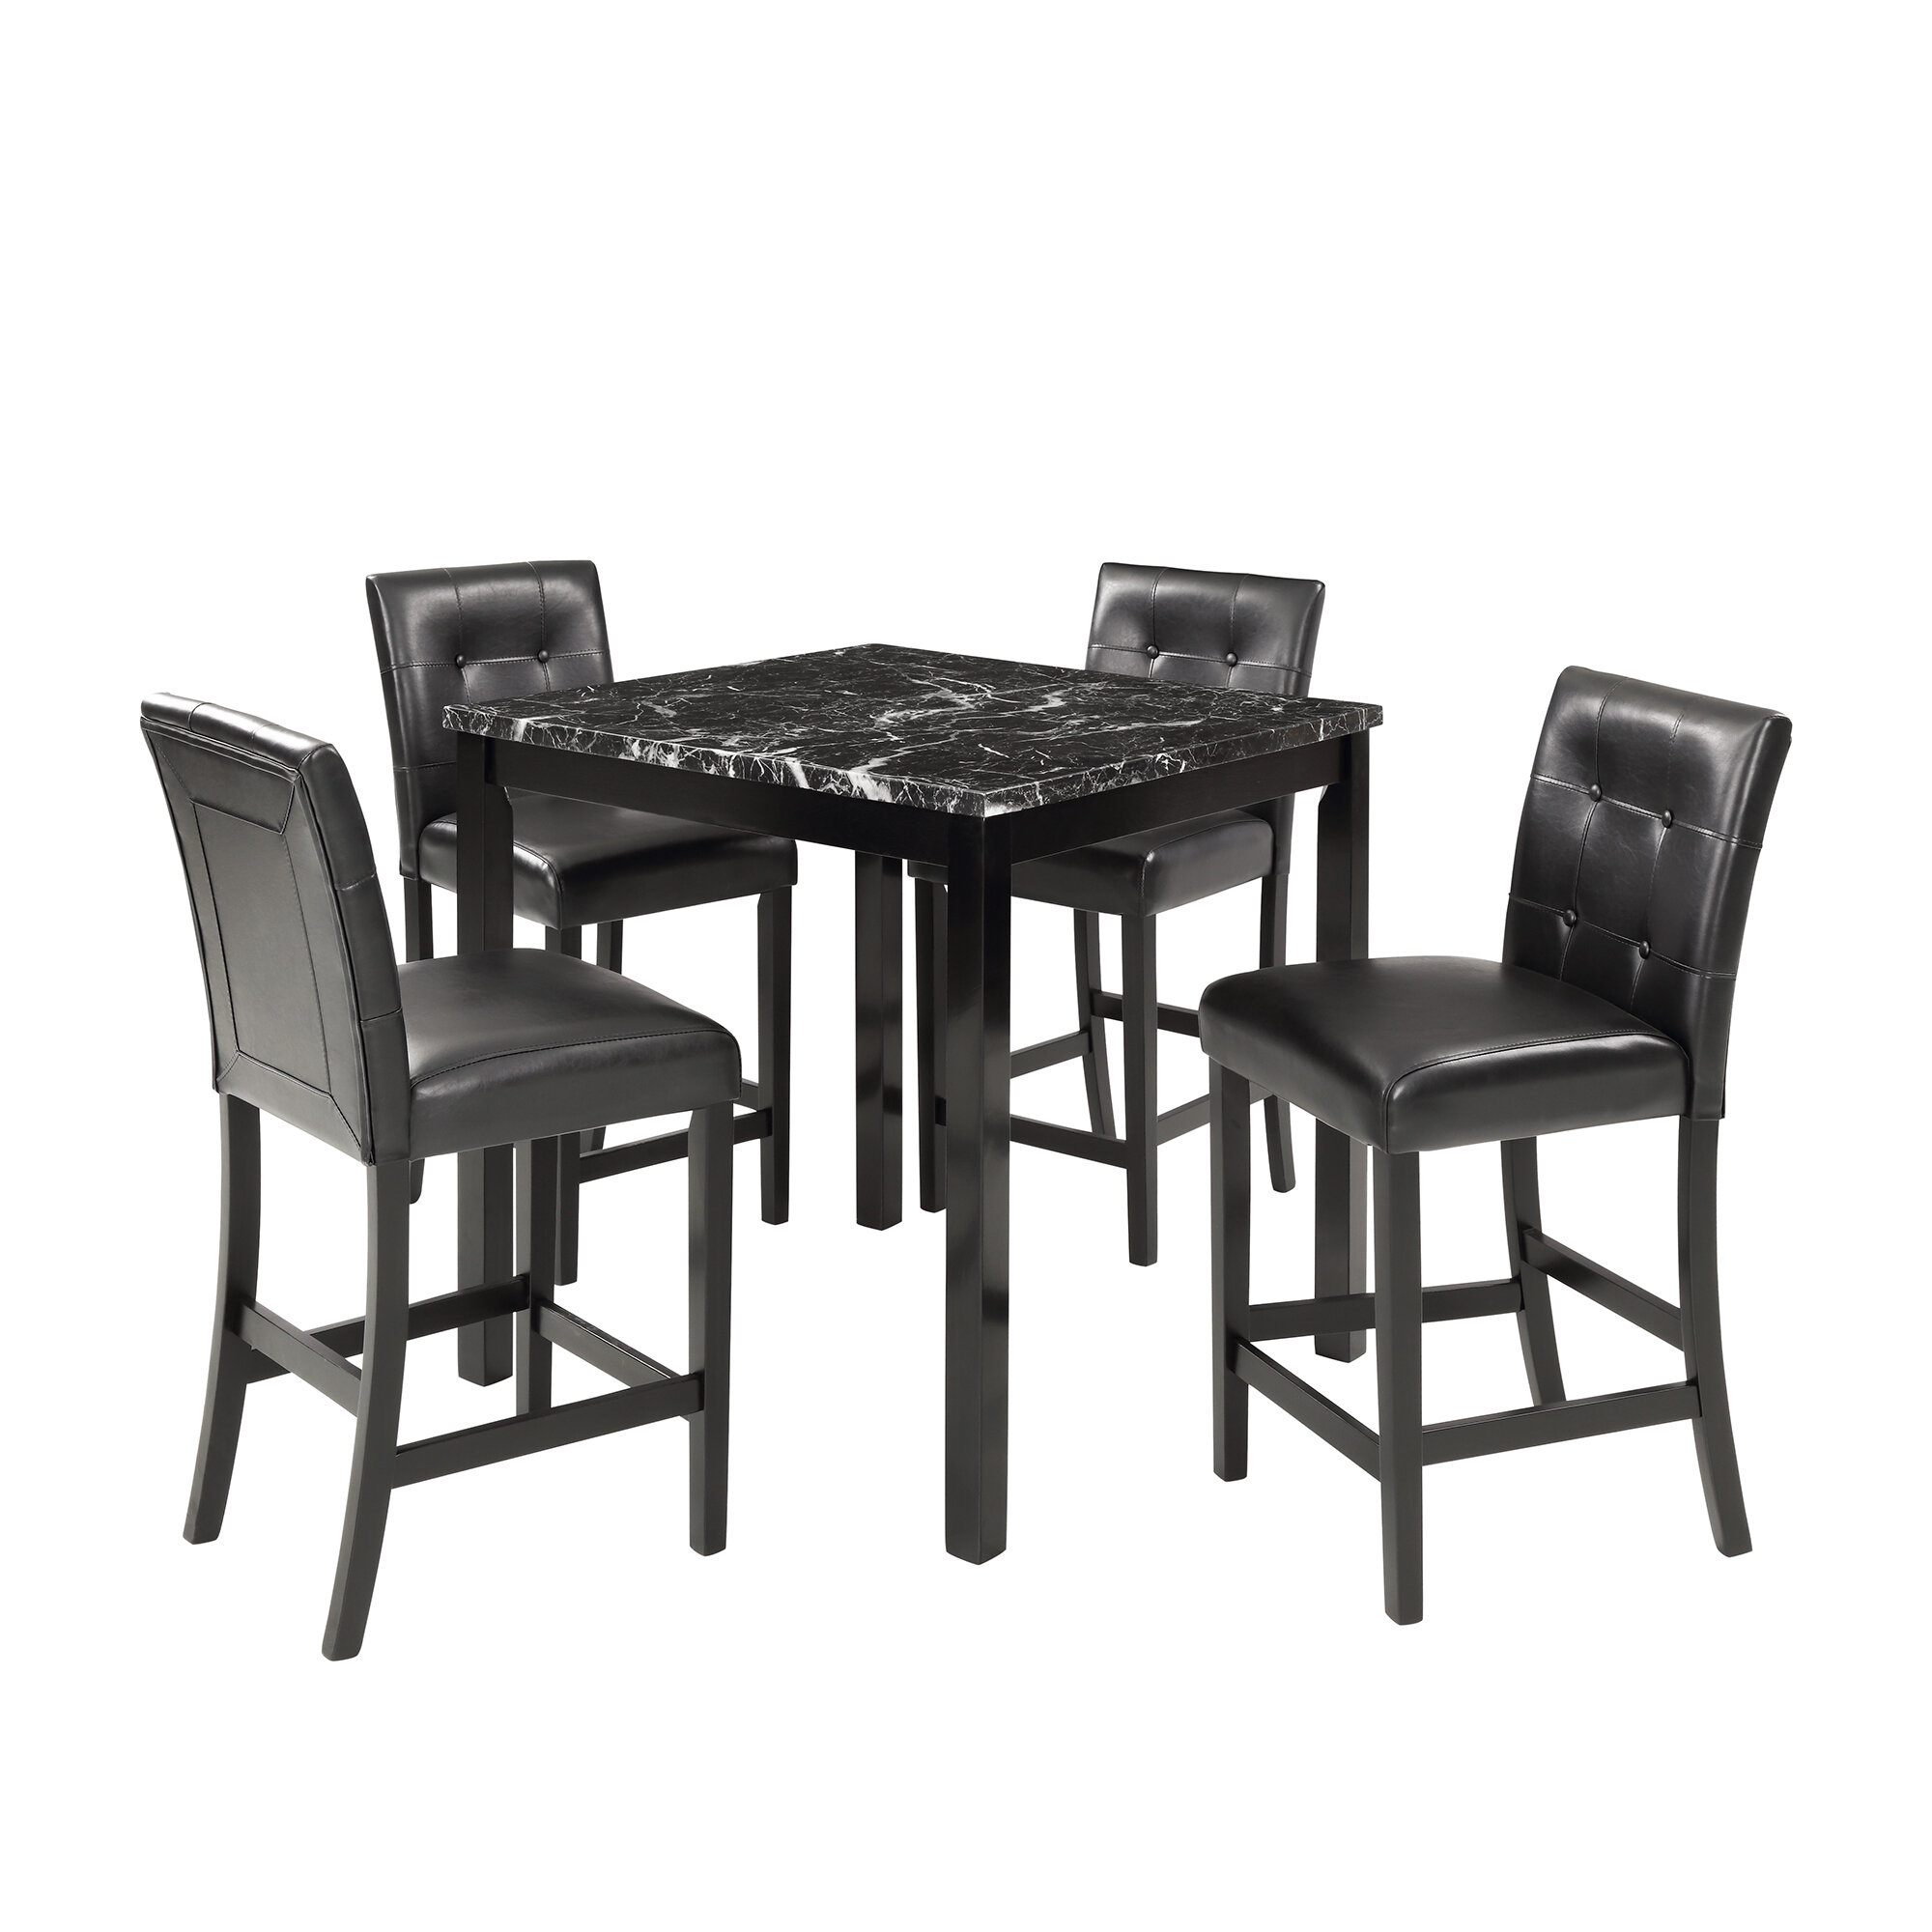 Red Barrel Studio 5 Piece Counter Height Dining Table Set Durable Kitchen Tables Furniture With 4 Matching Chairs Dining Room Desk With Laminated Faux Marble Top For Breakfast Lunch Dinner Black Wayfair Ca